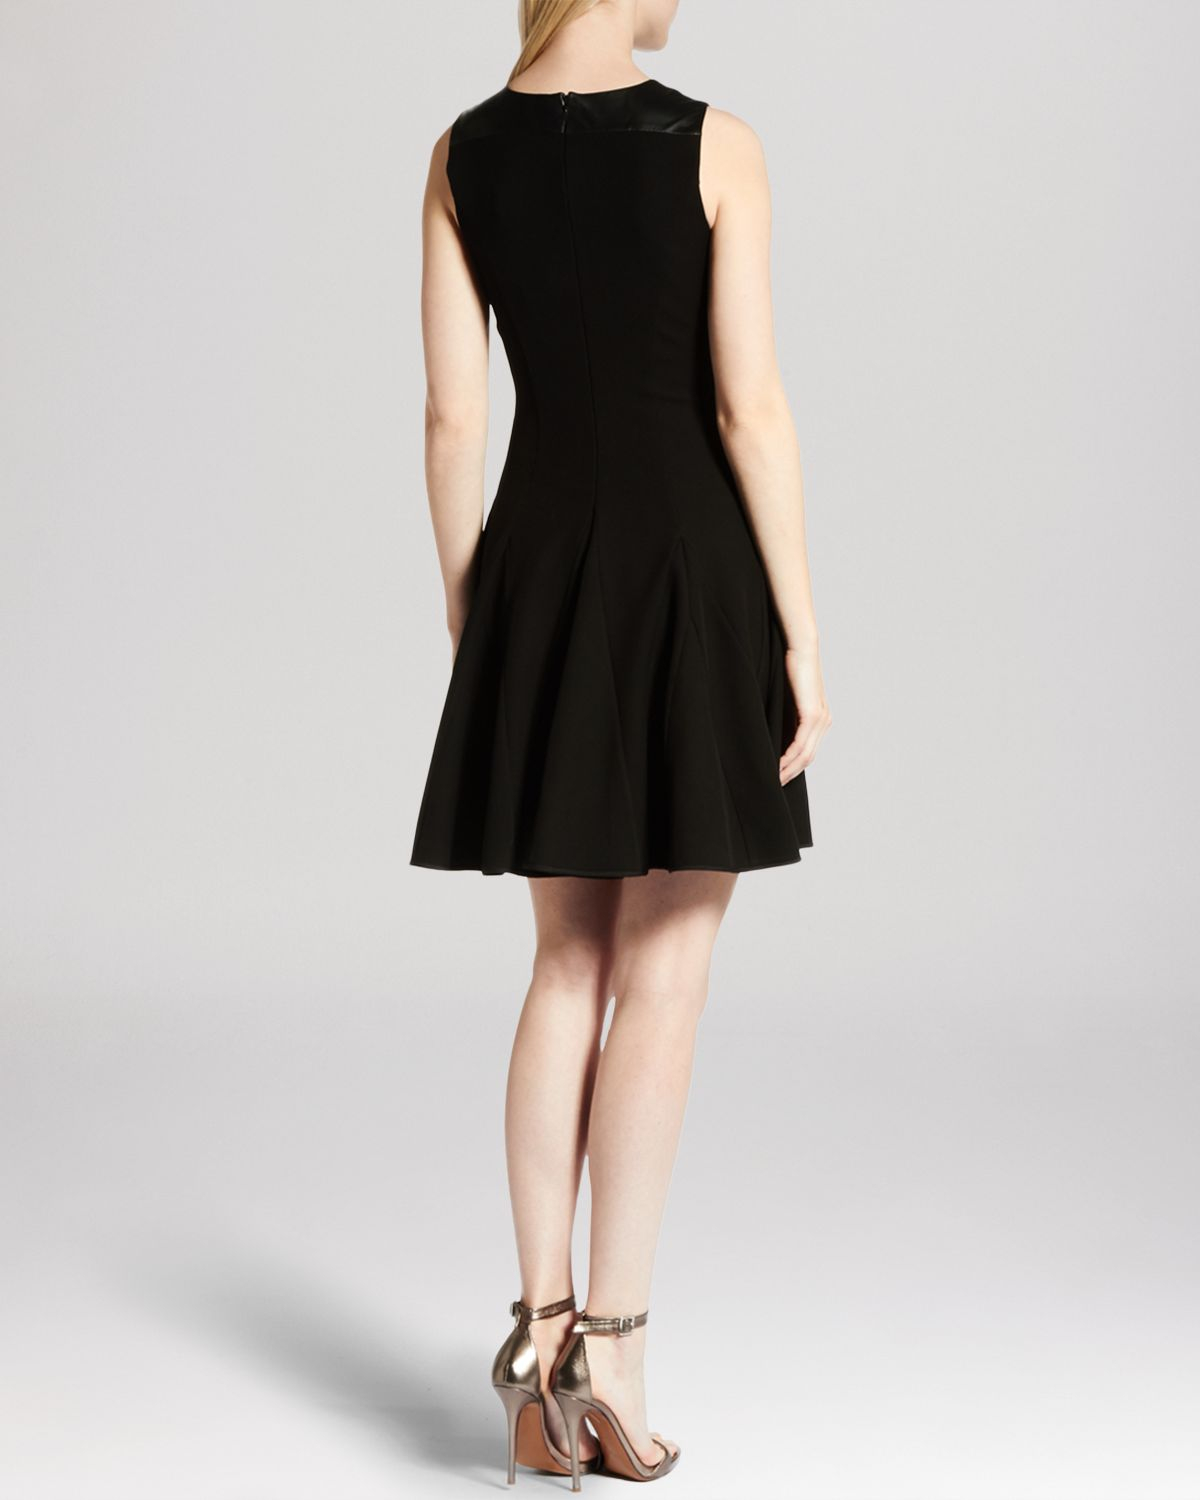 Halston Dress Sleeveless Round Neck Fit And Flare In